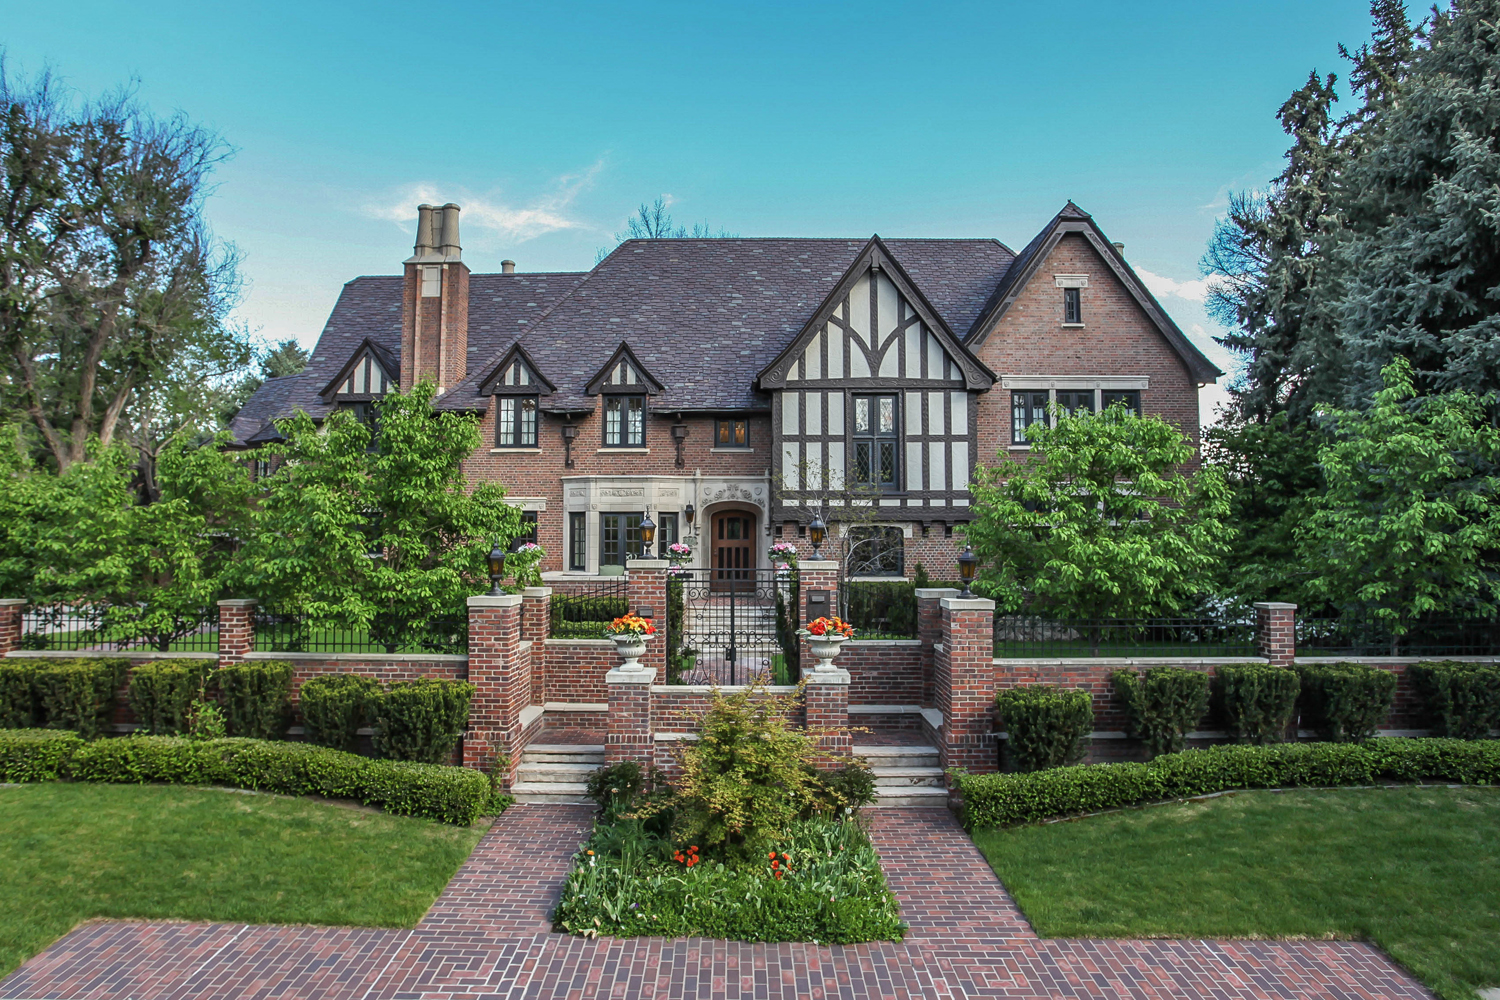 Casa Unifamiliar por un Venta en The Finest & Most Inspiring Property in Denver Country Club 575 Circle Drive Denver, Colorado 80206 Estados Unidos